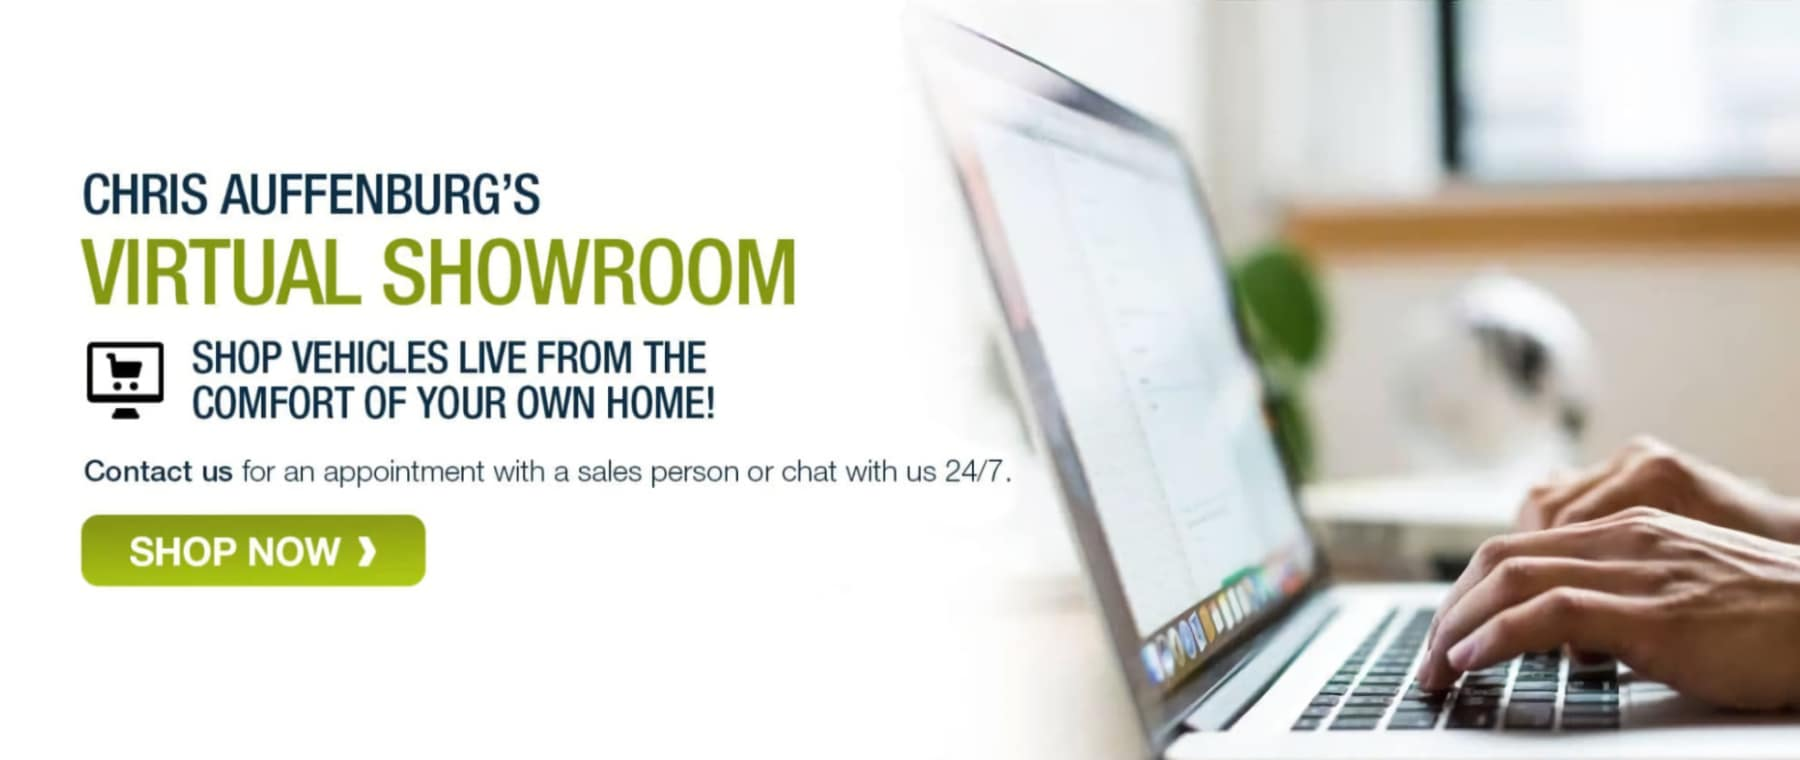 VirtualShowroom